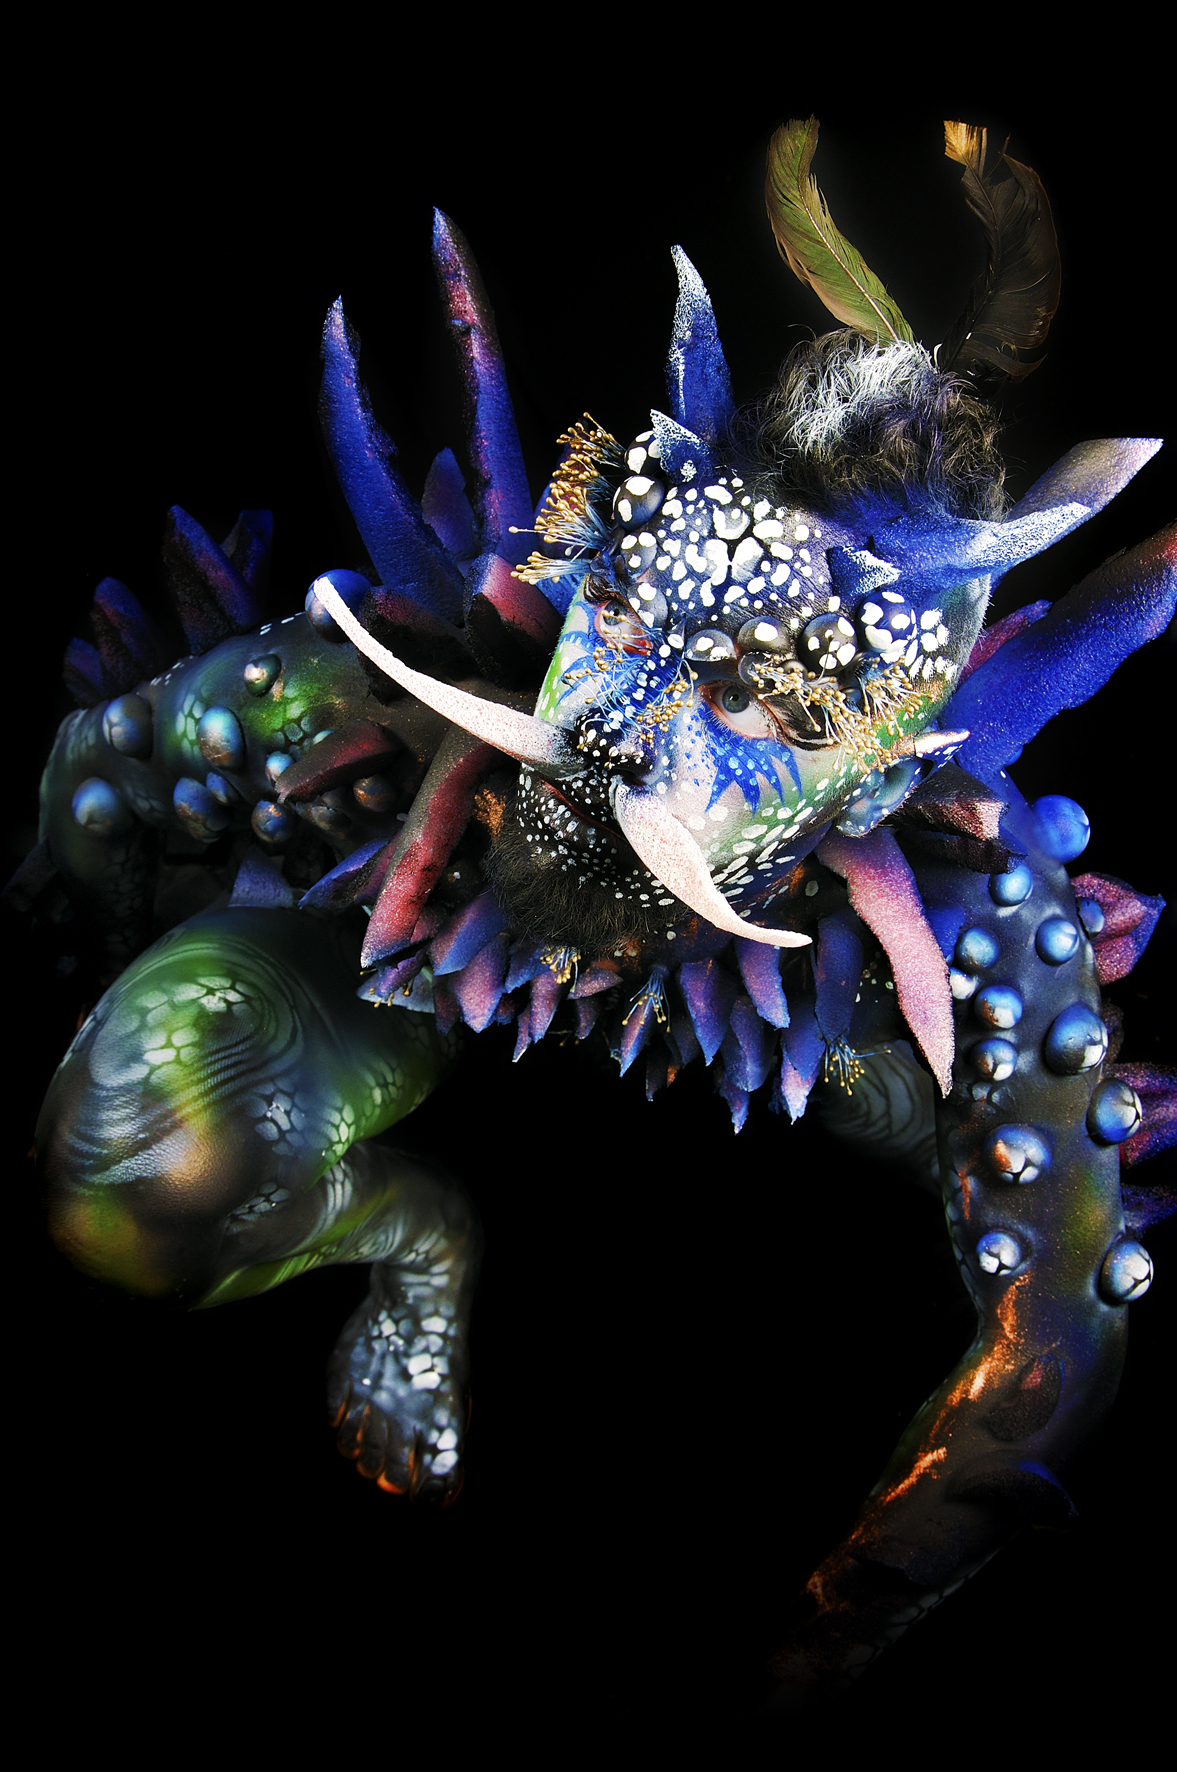 Special-Effects-brilliance-by-artist-Kelli-MacAlpine-she-recreated-a-small-beetle-important-for-our-ecosystem-in-a-big-way.jpg